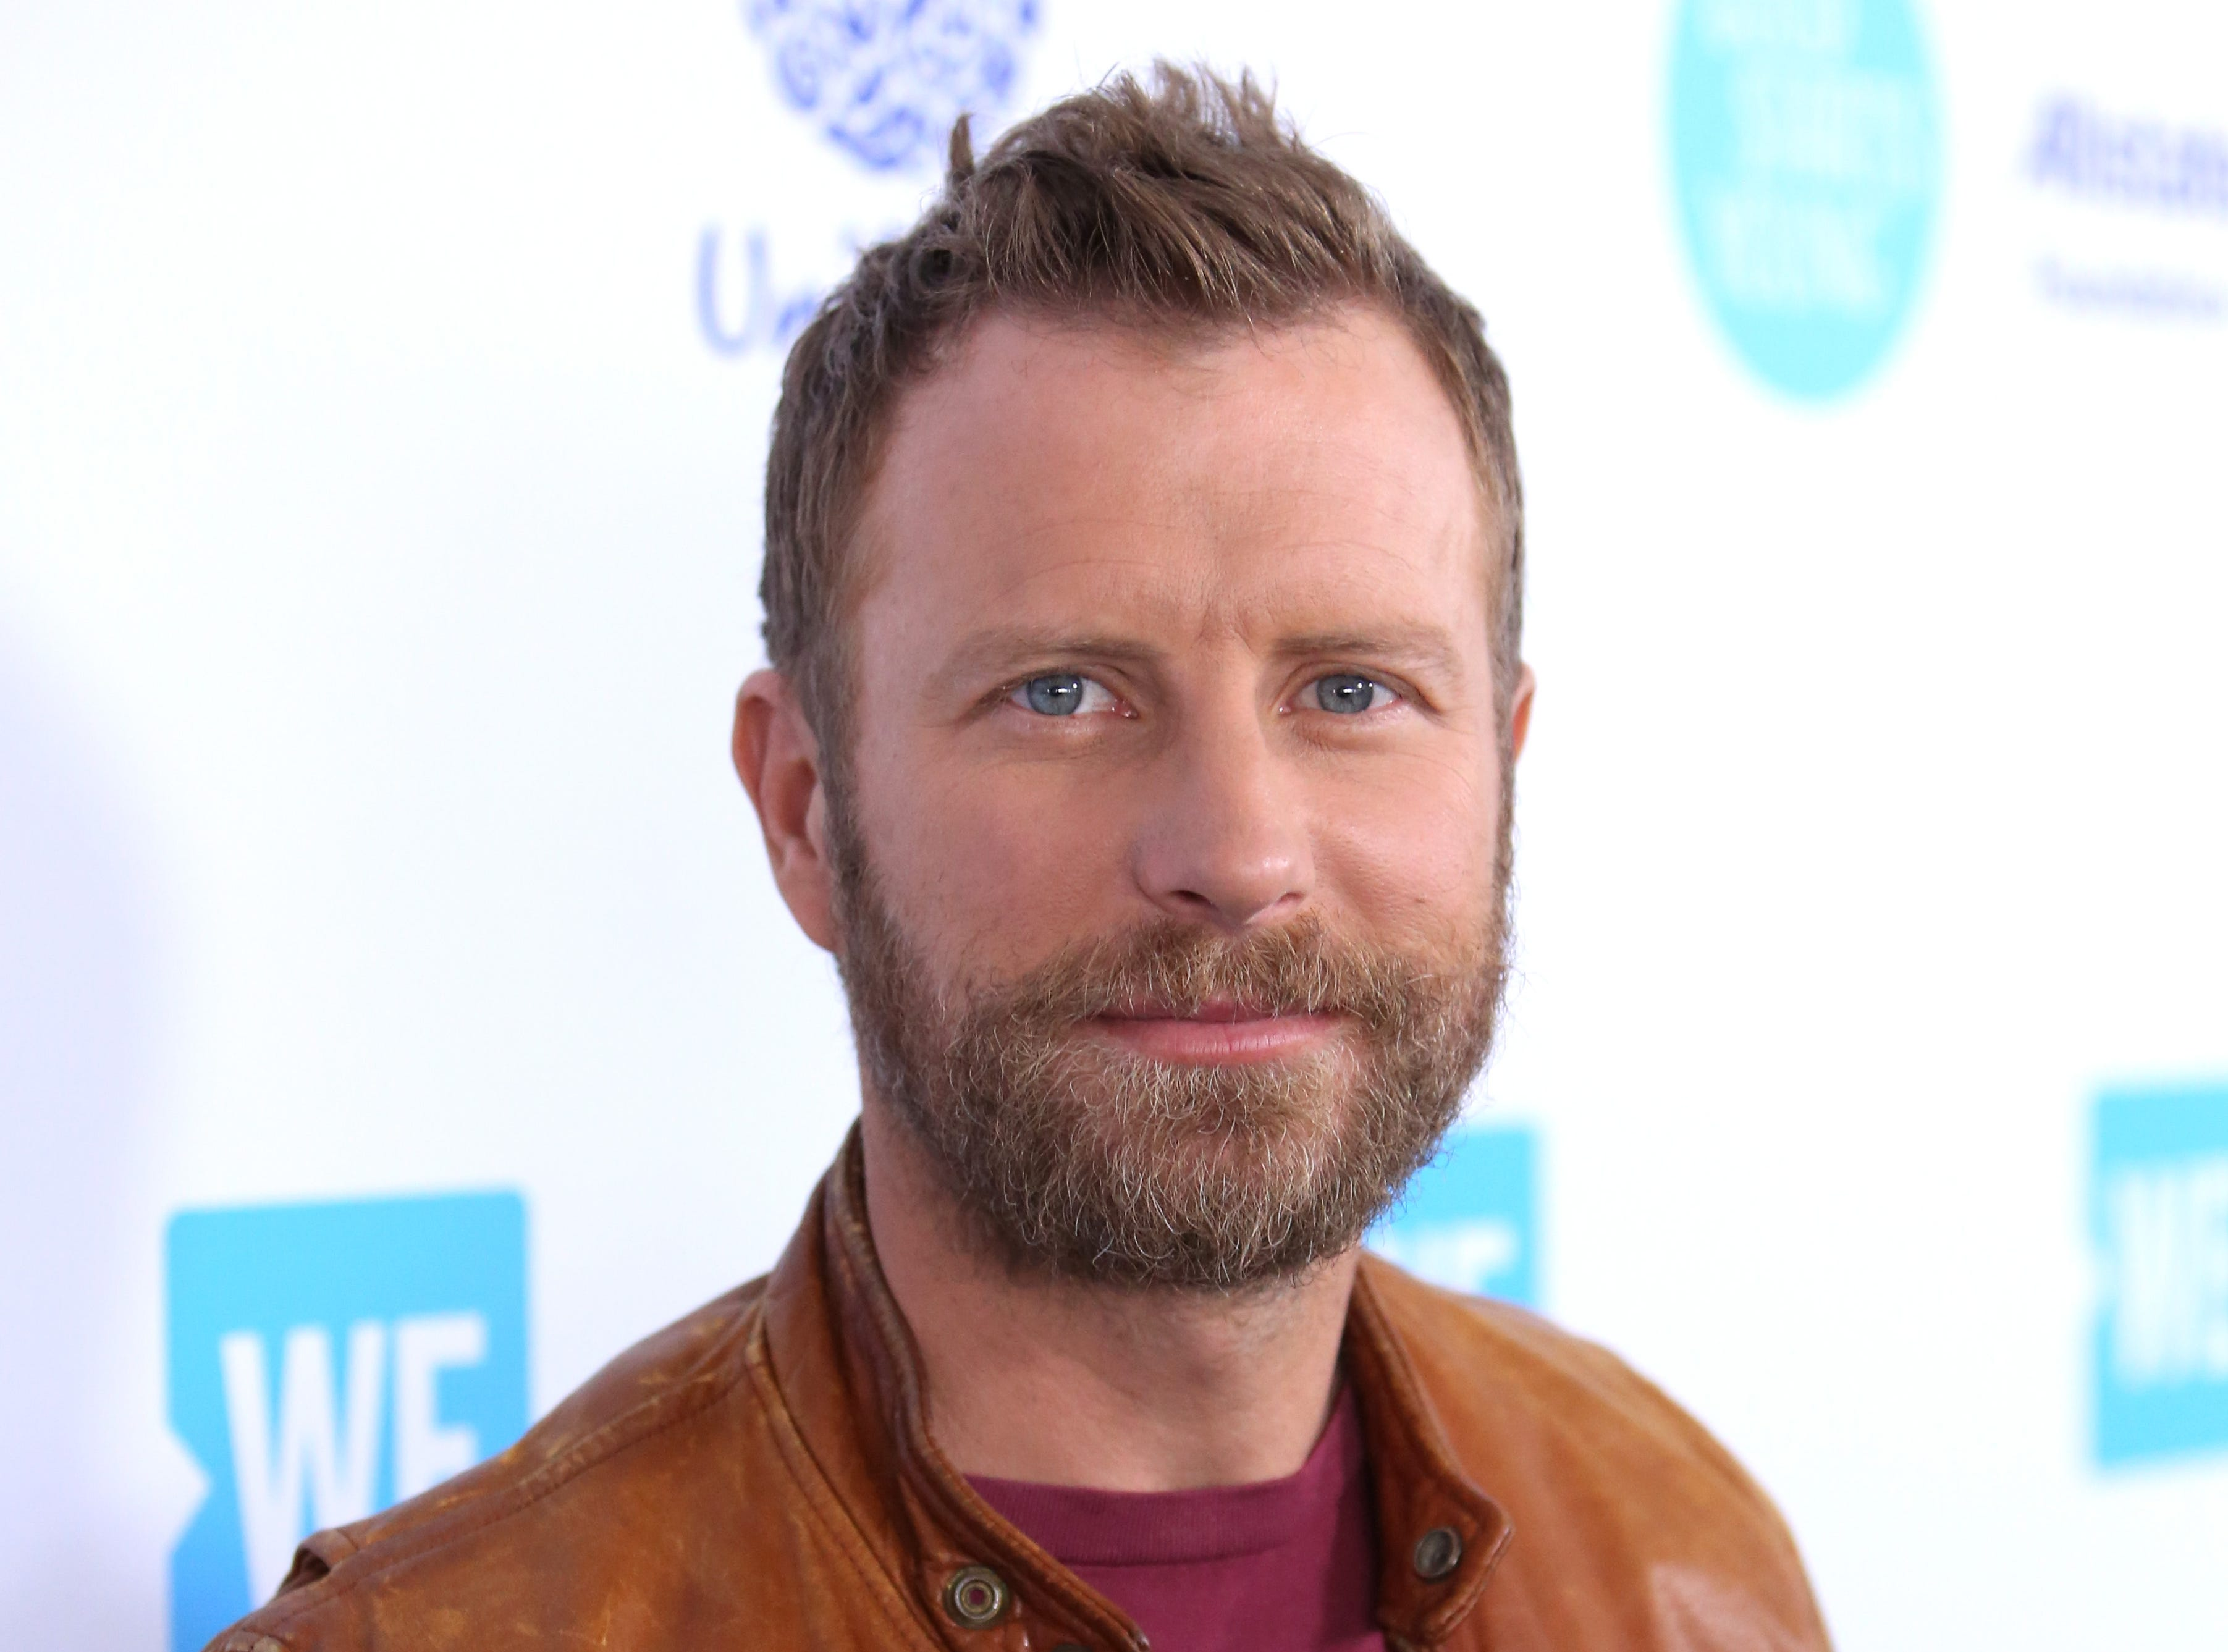 Dierks Bentley attends WE Day California  at The Forum on April 19, 2018, in Inglewood, California.